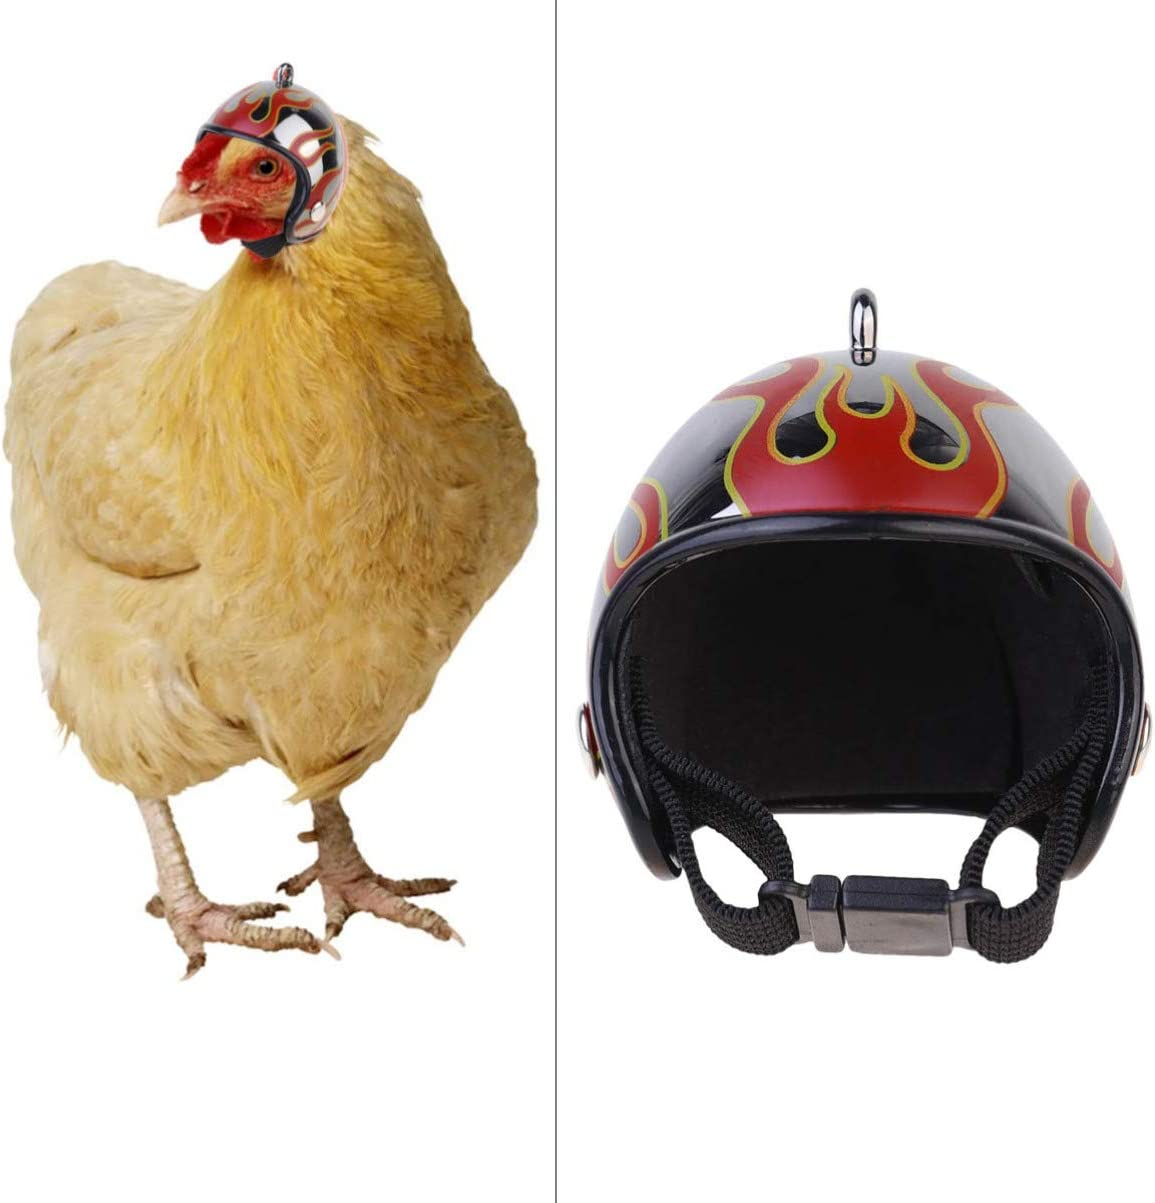 Funny Chicken Hat Safety Parrot Helmet Toy with Adjustable Chin Strap POPETPOP Small Pet Helmet Sun Rain Protection Small Pet Hard Hat